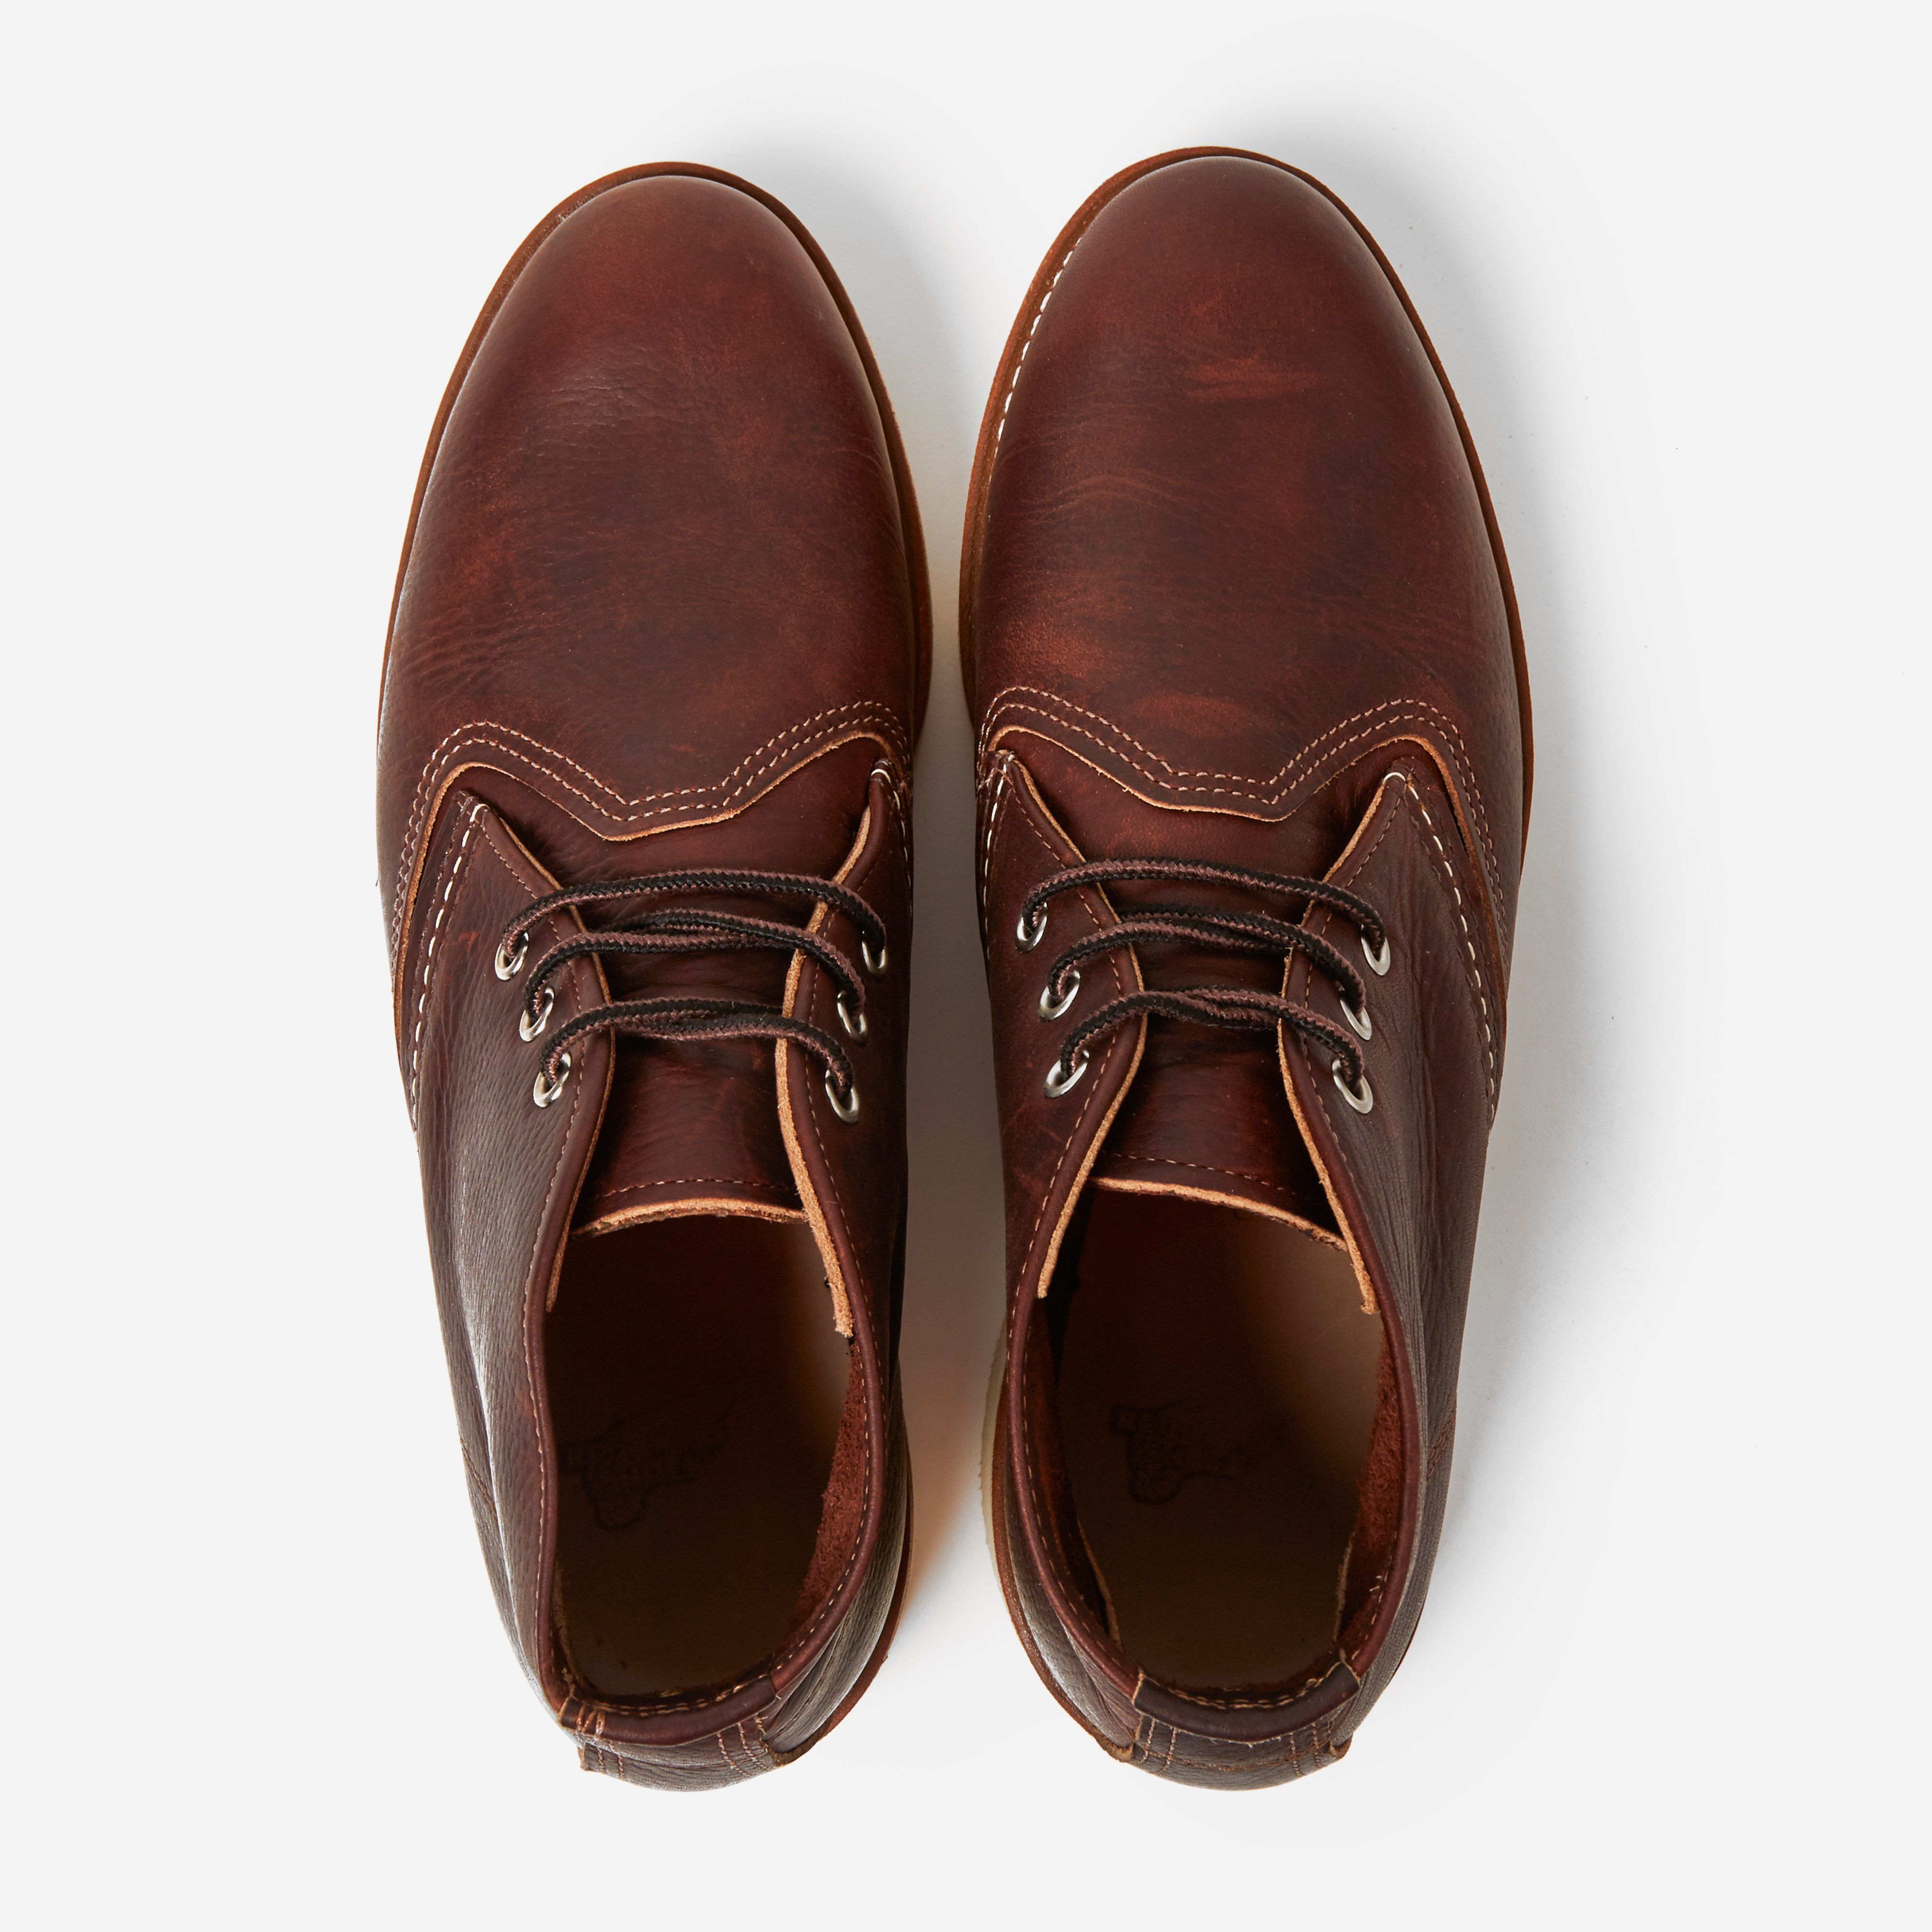 Red Wing 3141 Chukka Boot